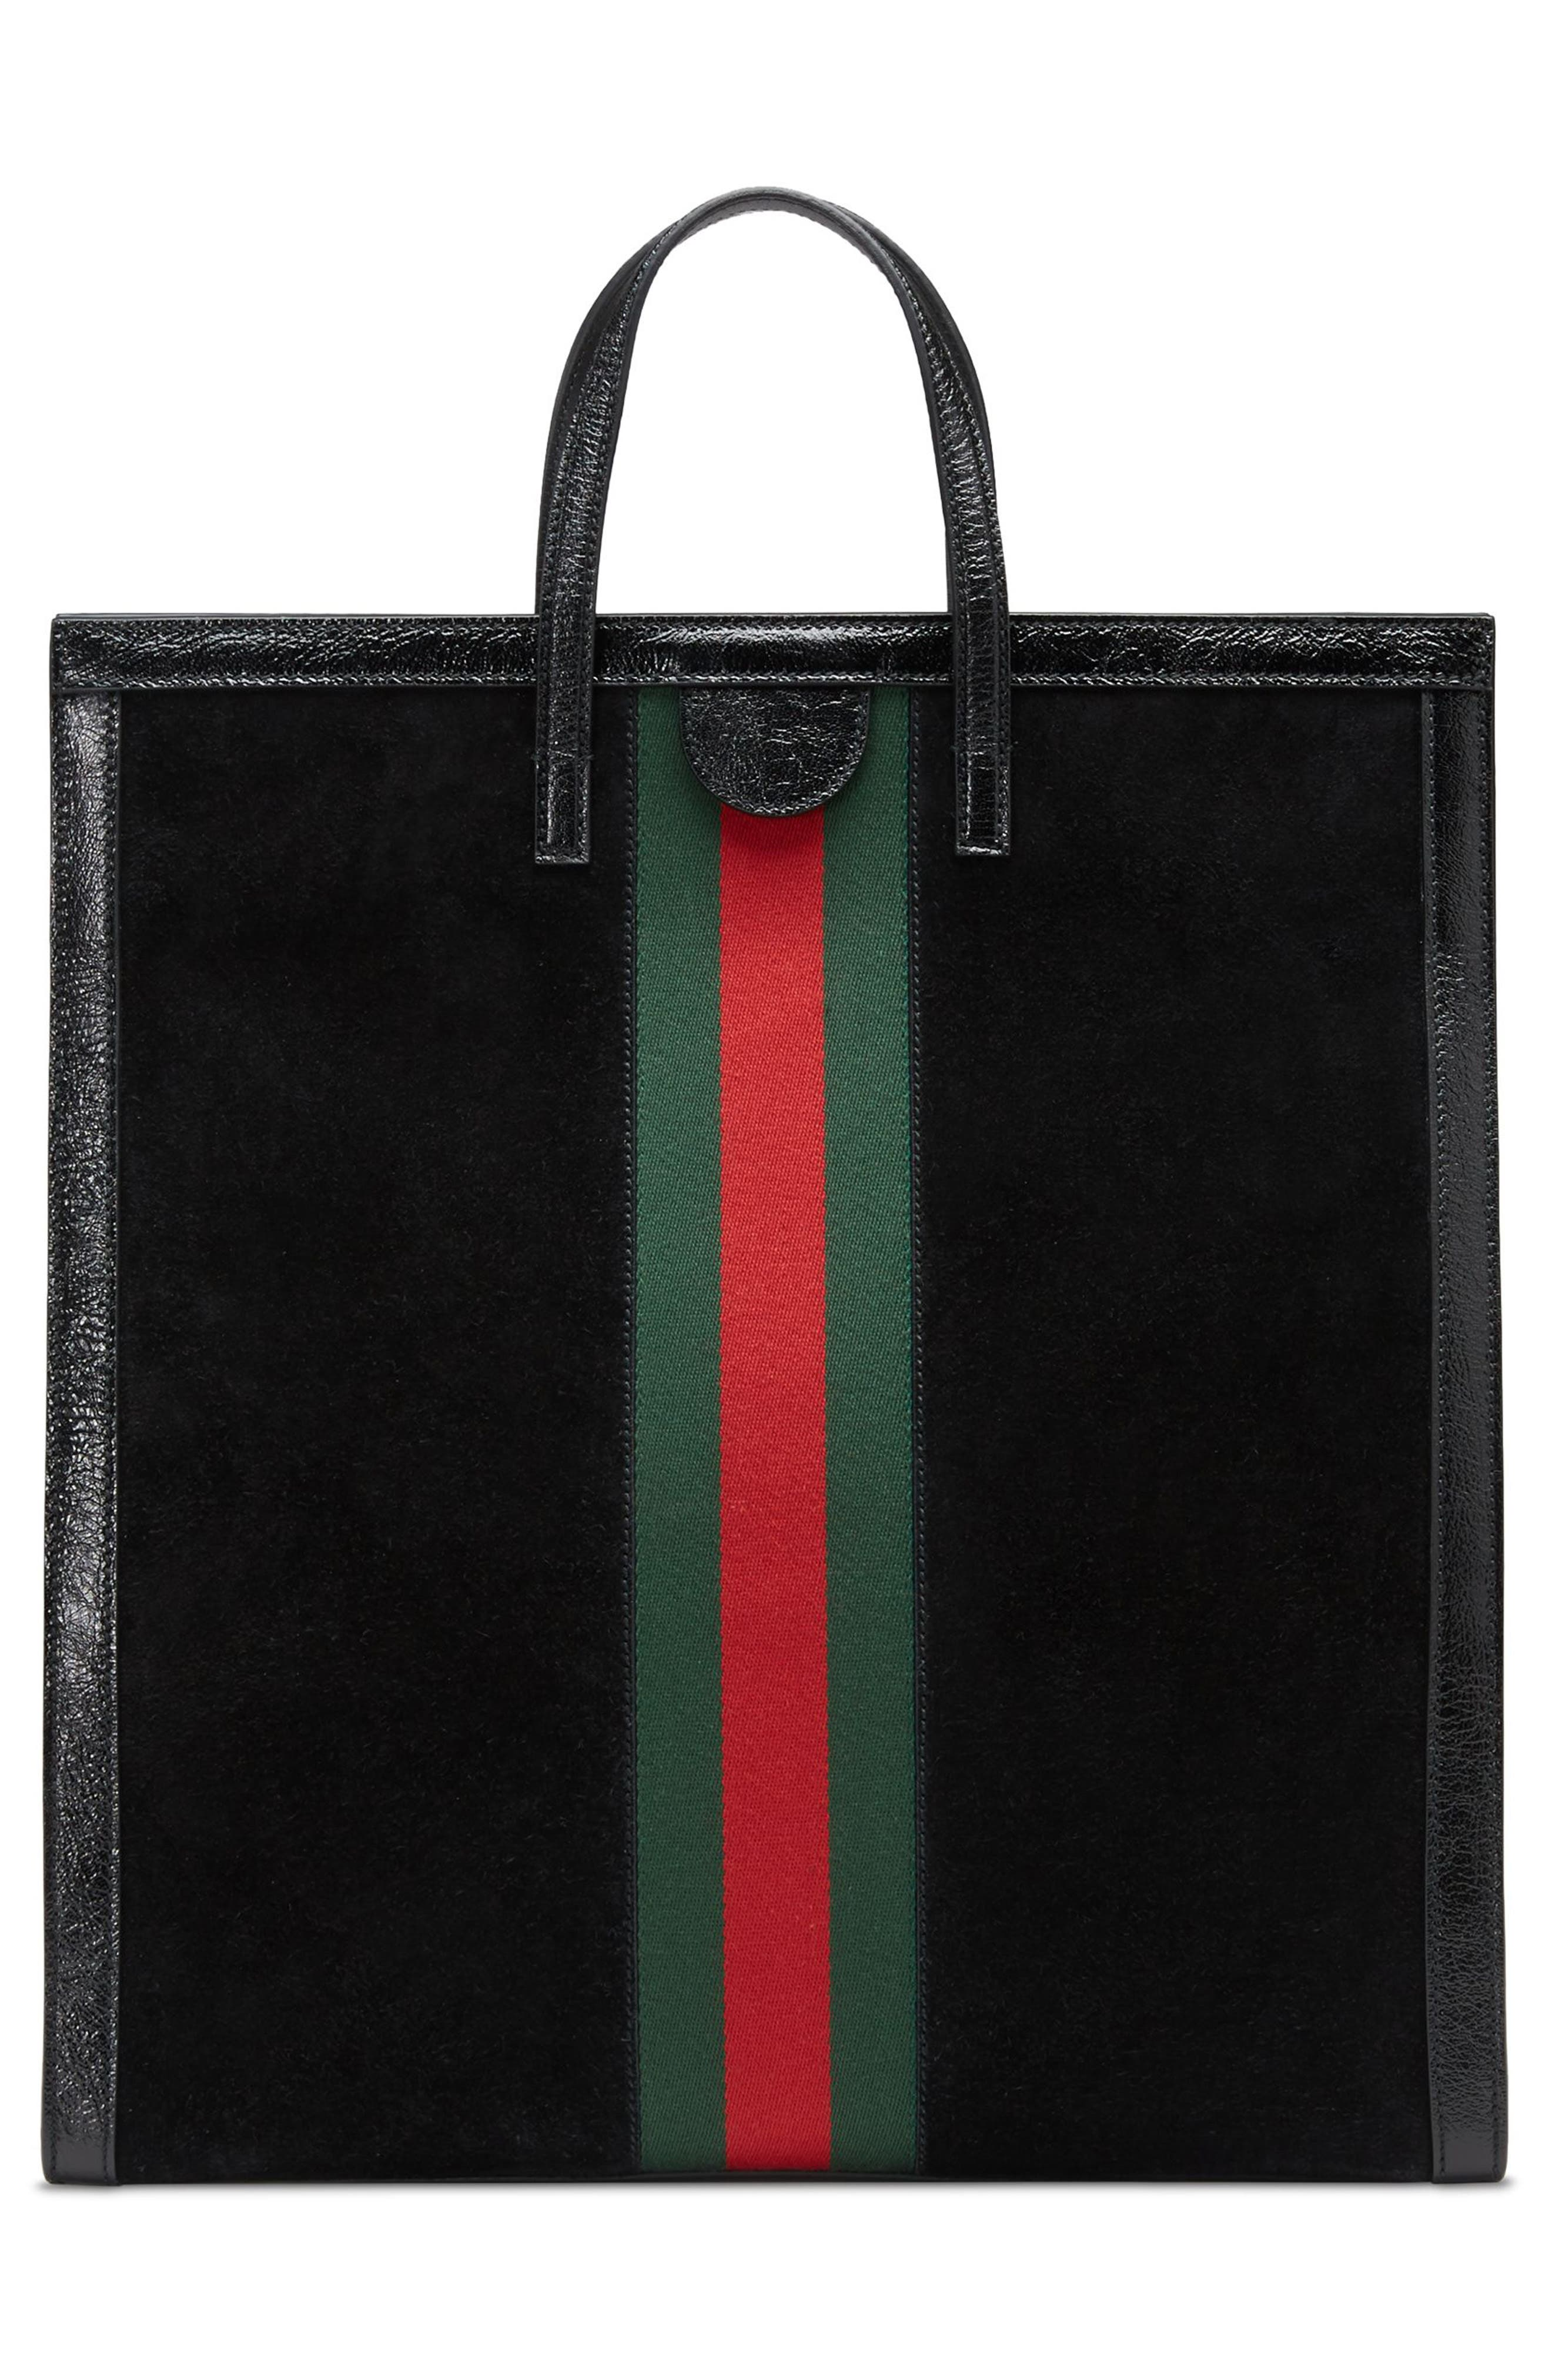 Ophidia House Web Suede Tote,                             Alternate thumbnail 2, color,                             Nero/ Nero/ Vert Red Vert